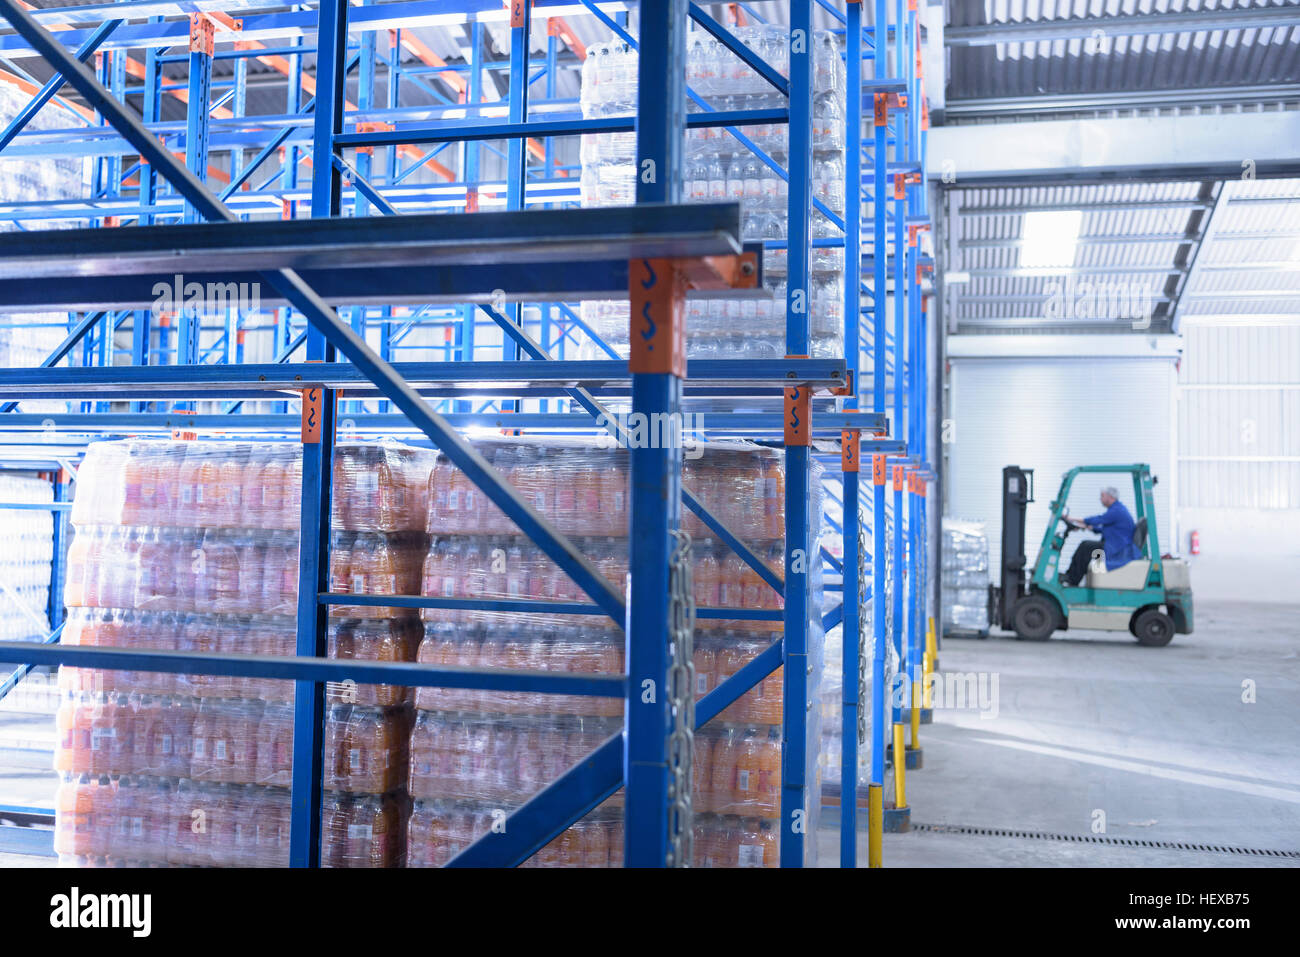 Worker packing water bottles in storage racking in spring water factory - Stock Image